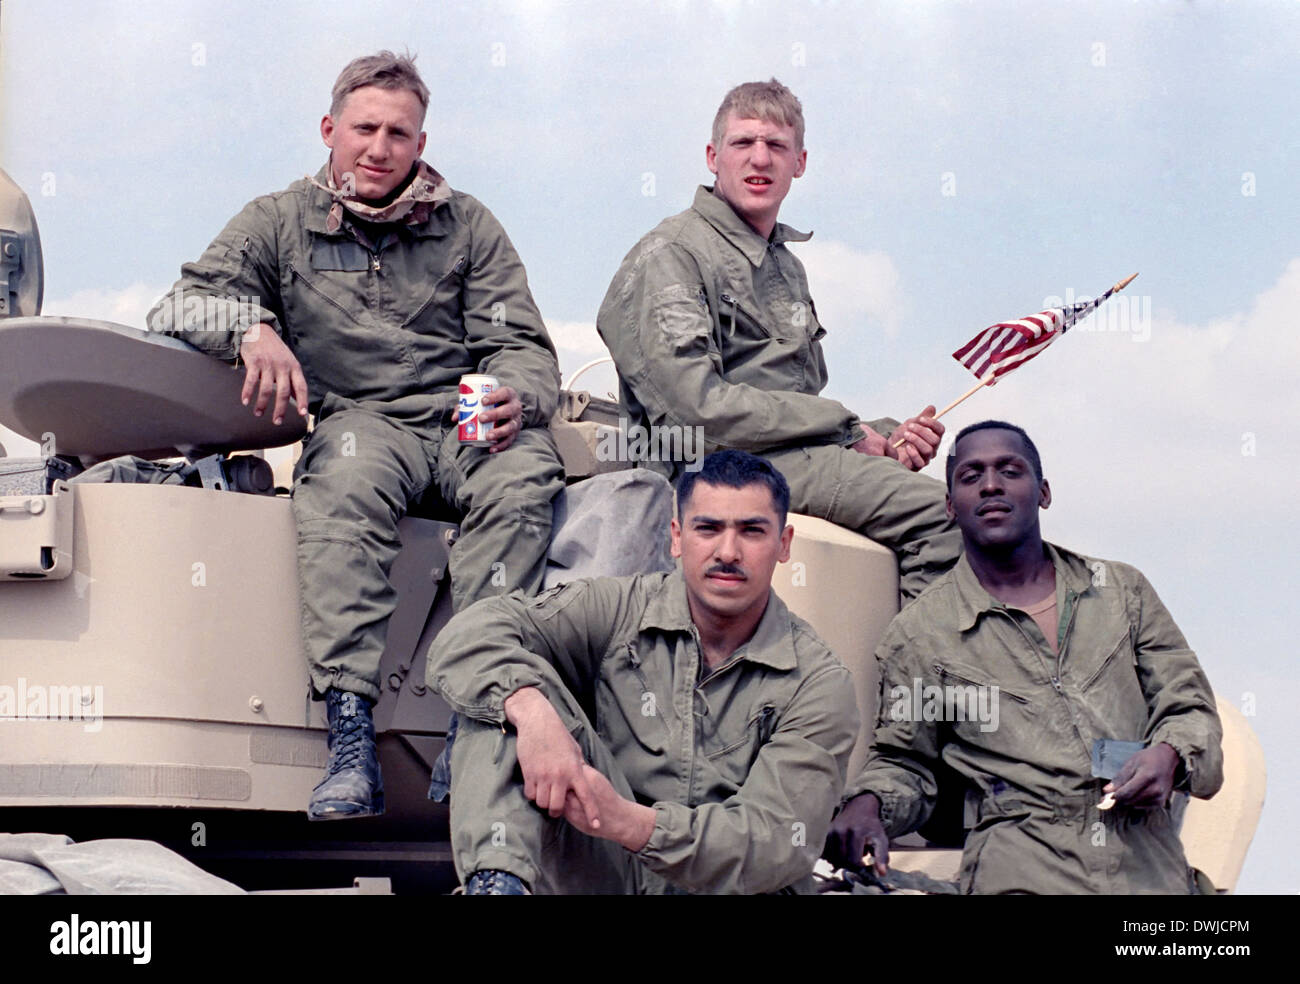 US Army soldiers sit on top of their Bradley Fighting Vehicle after the land battle begun crossing the border into Iraq during the Gulf War February 24, 1991 in Southern Iraq. - Stock Image